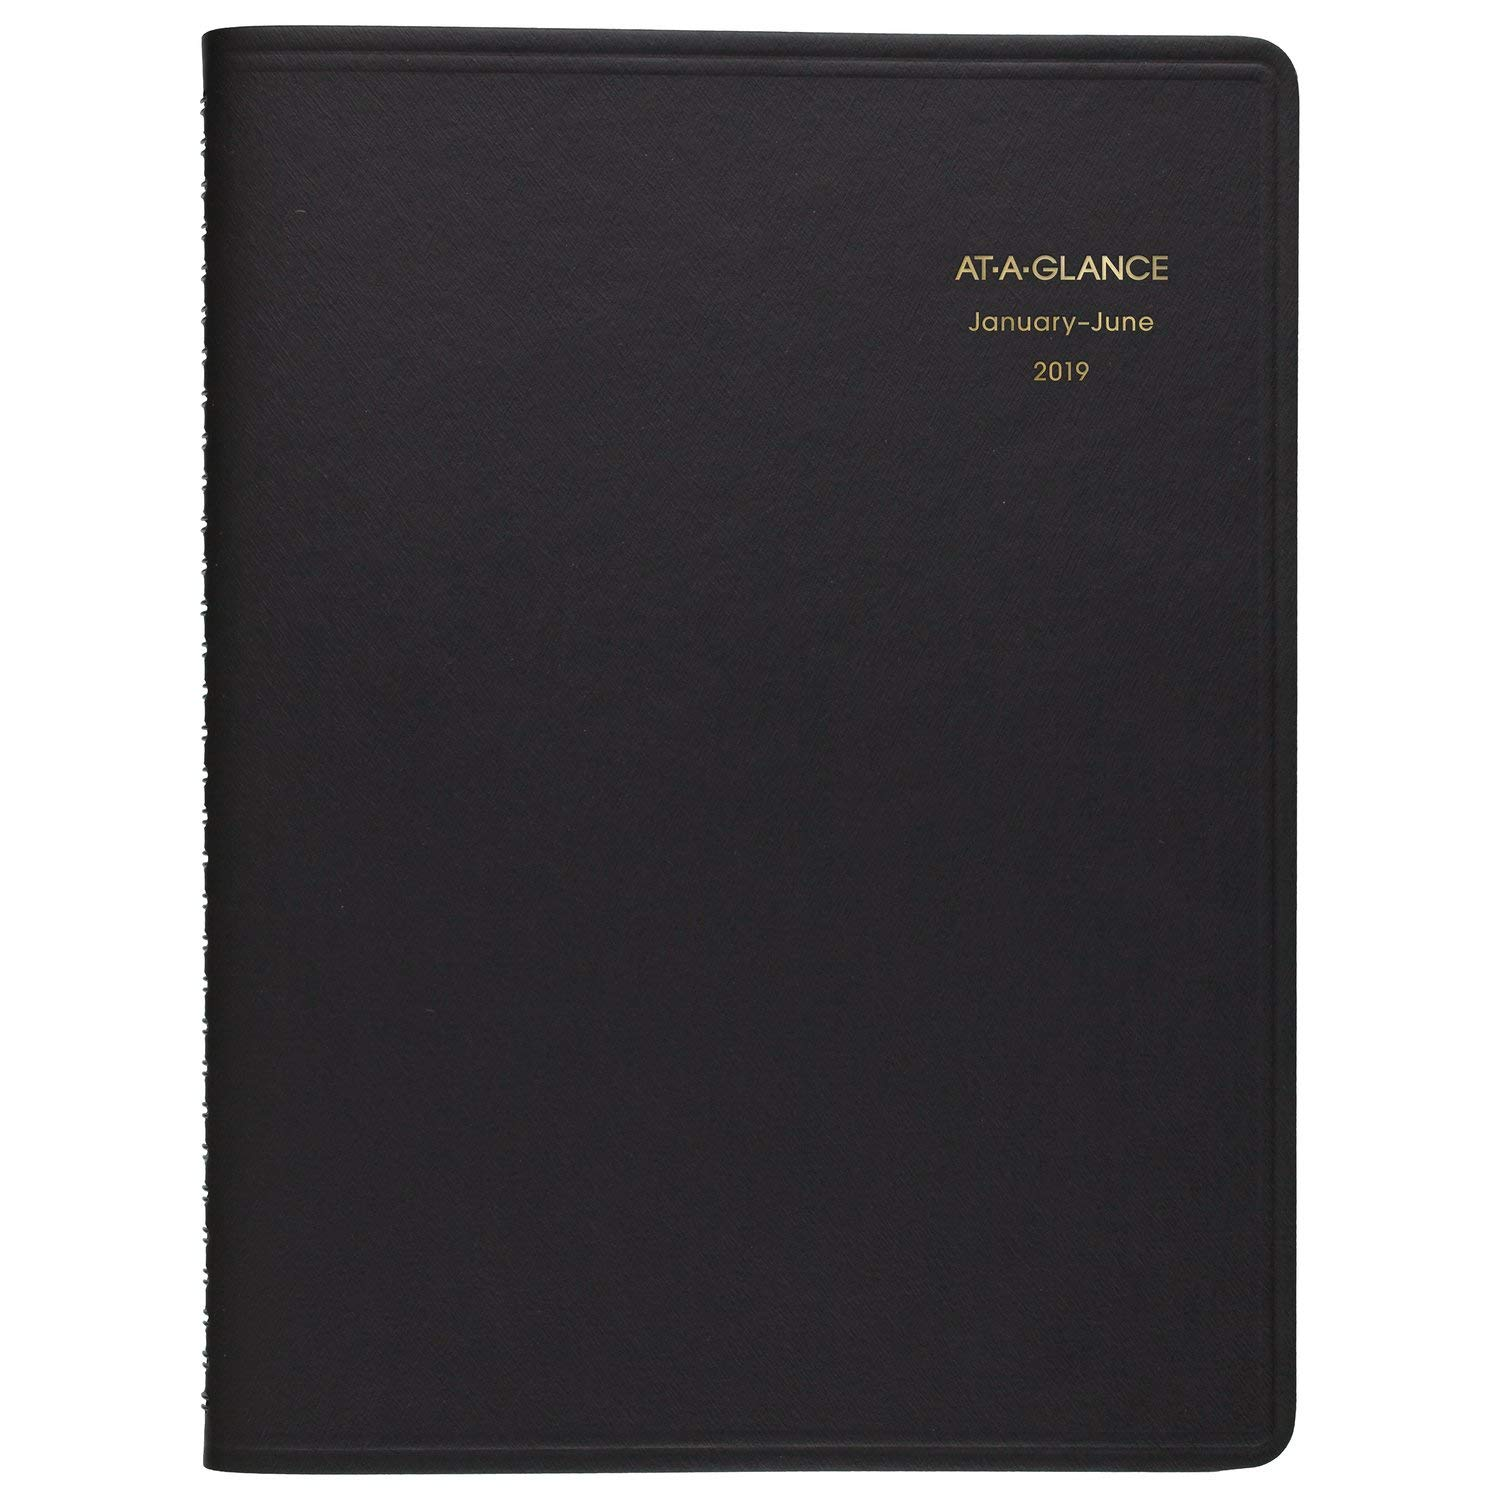 AT-A-GLANCE 2019 Daily Appointment Book, 8-1/2'' x 11'', Large, Eight Person Group Planner, Black (7021278)